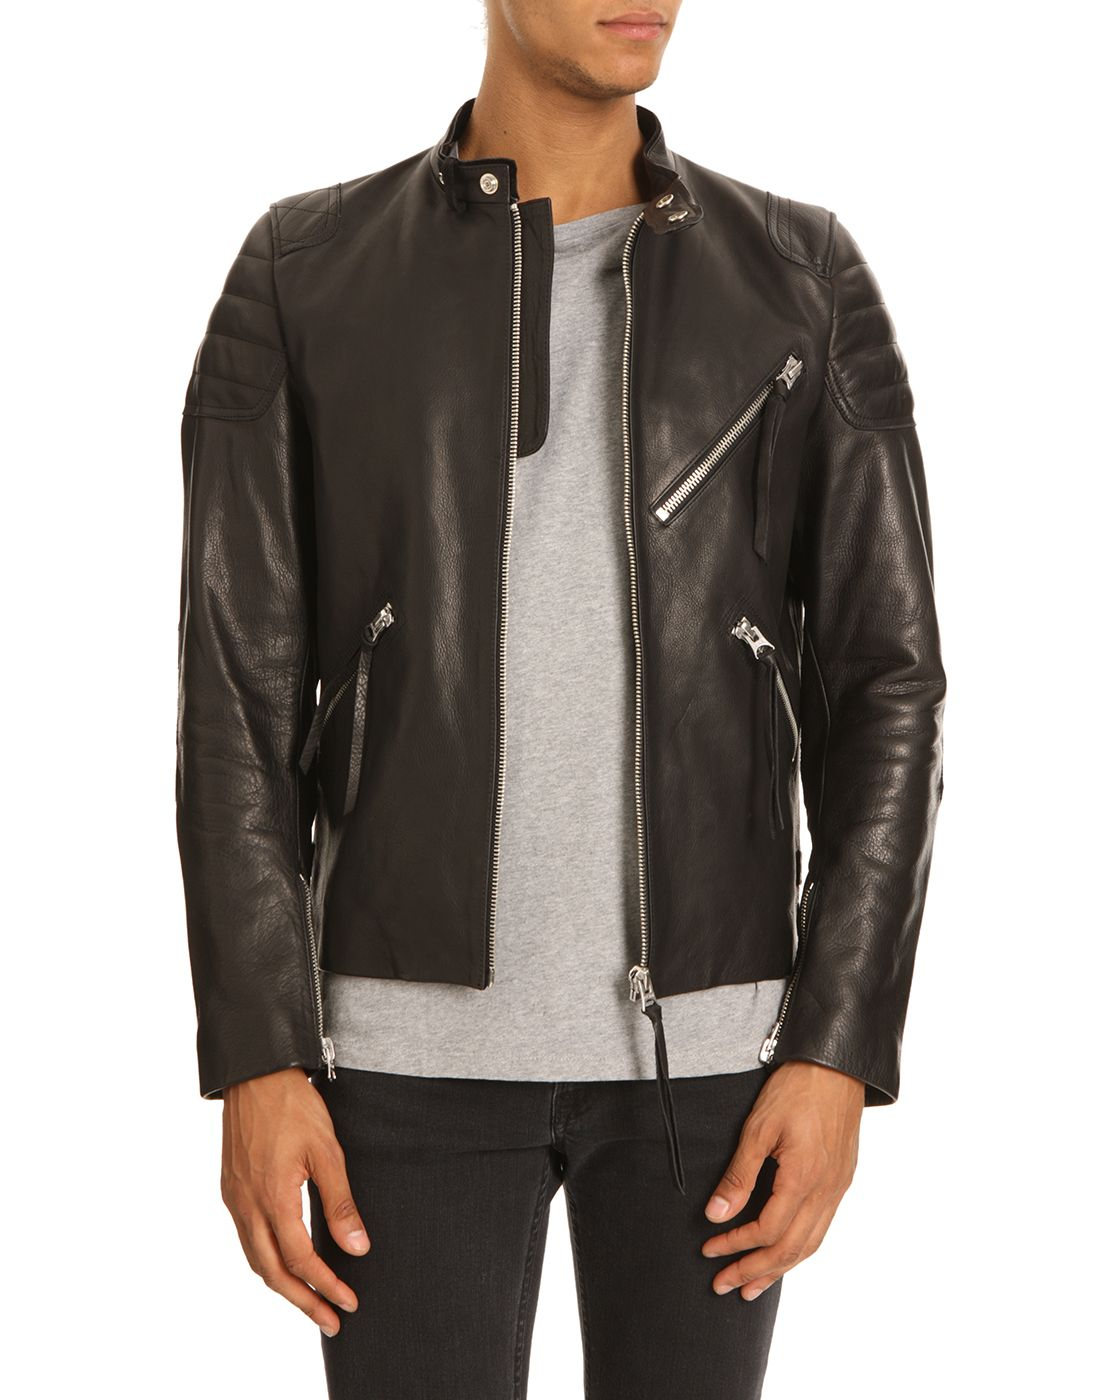 adff065ccea Acne, Oliver, Black Leather Jacket | Clothes & Style | Leather ...